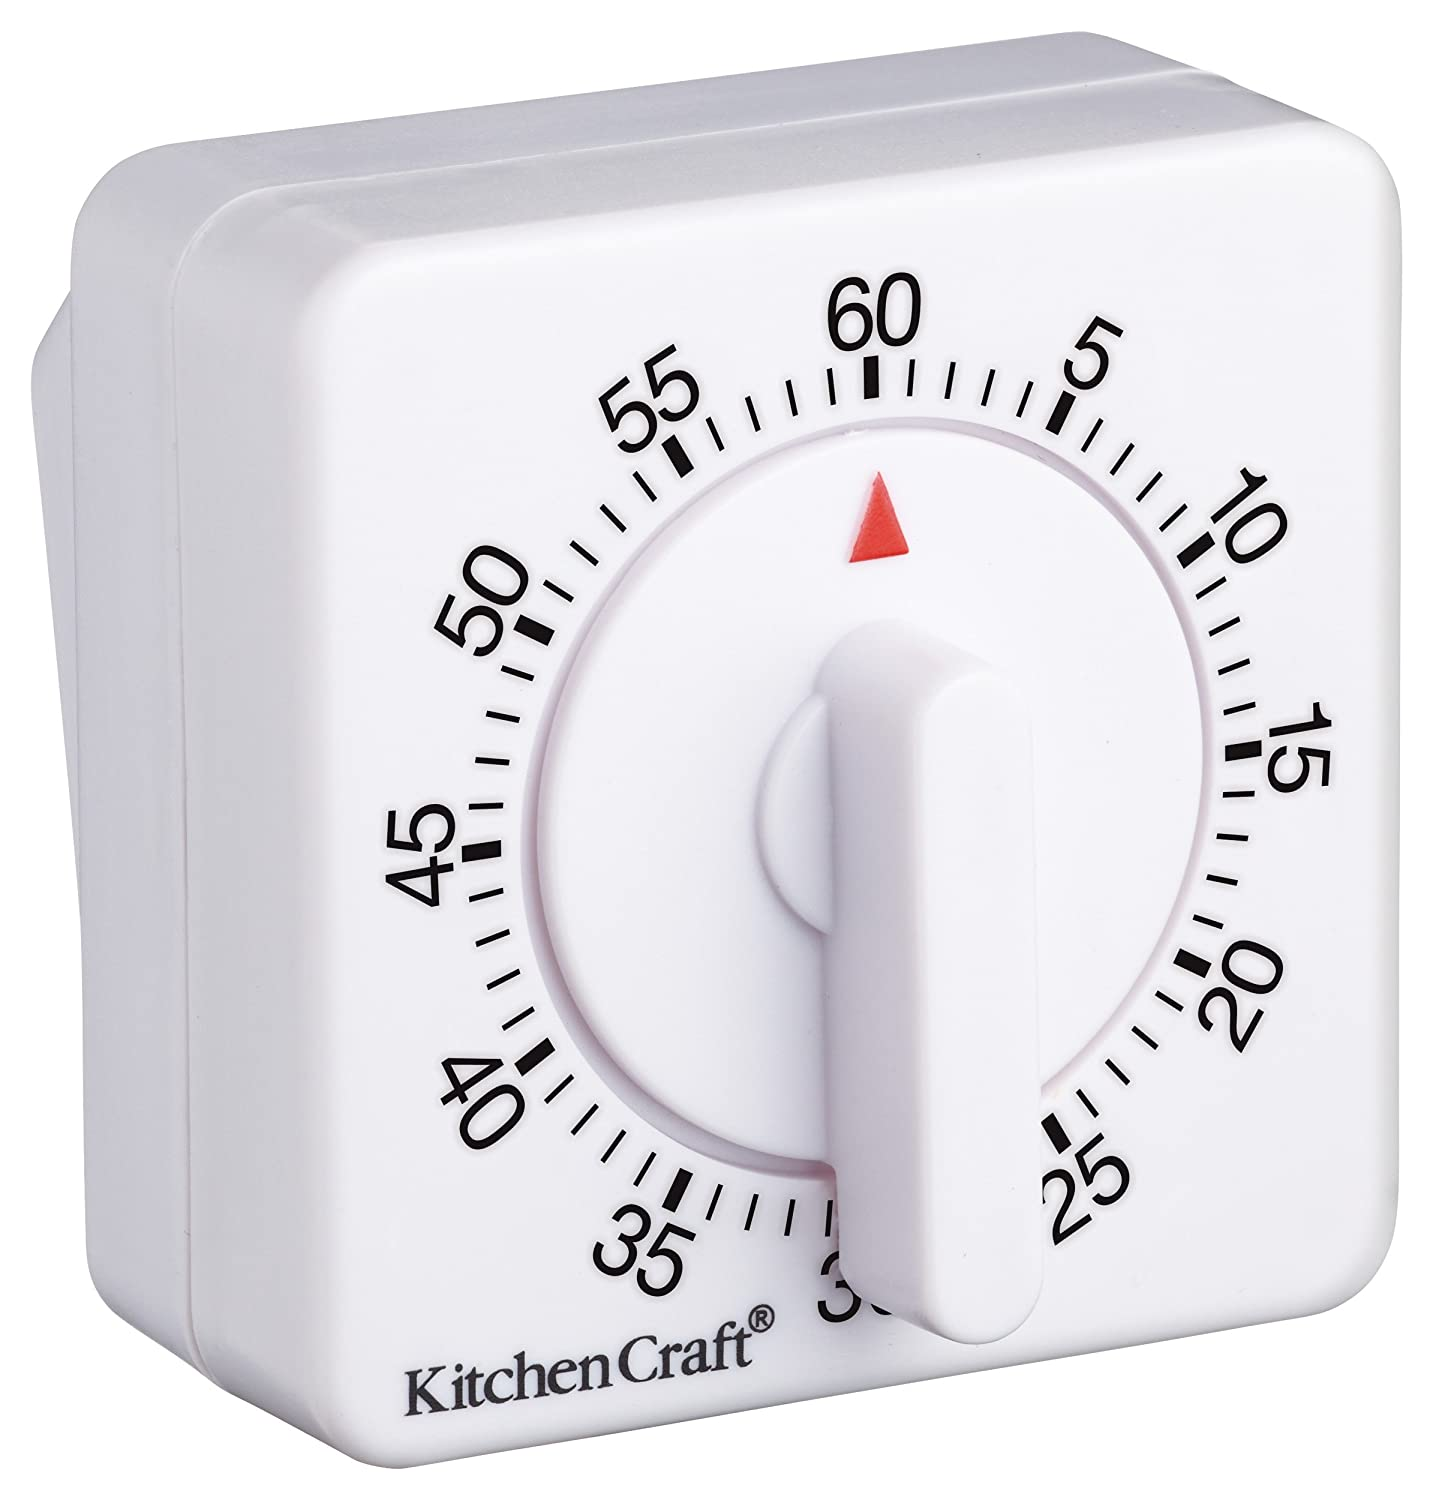 Amazon.com: Deluxe Half Round Wind-up 60 Minute Timer: Kitchen & Dining